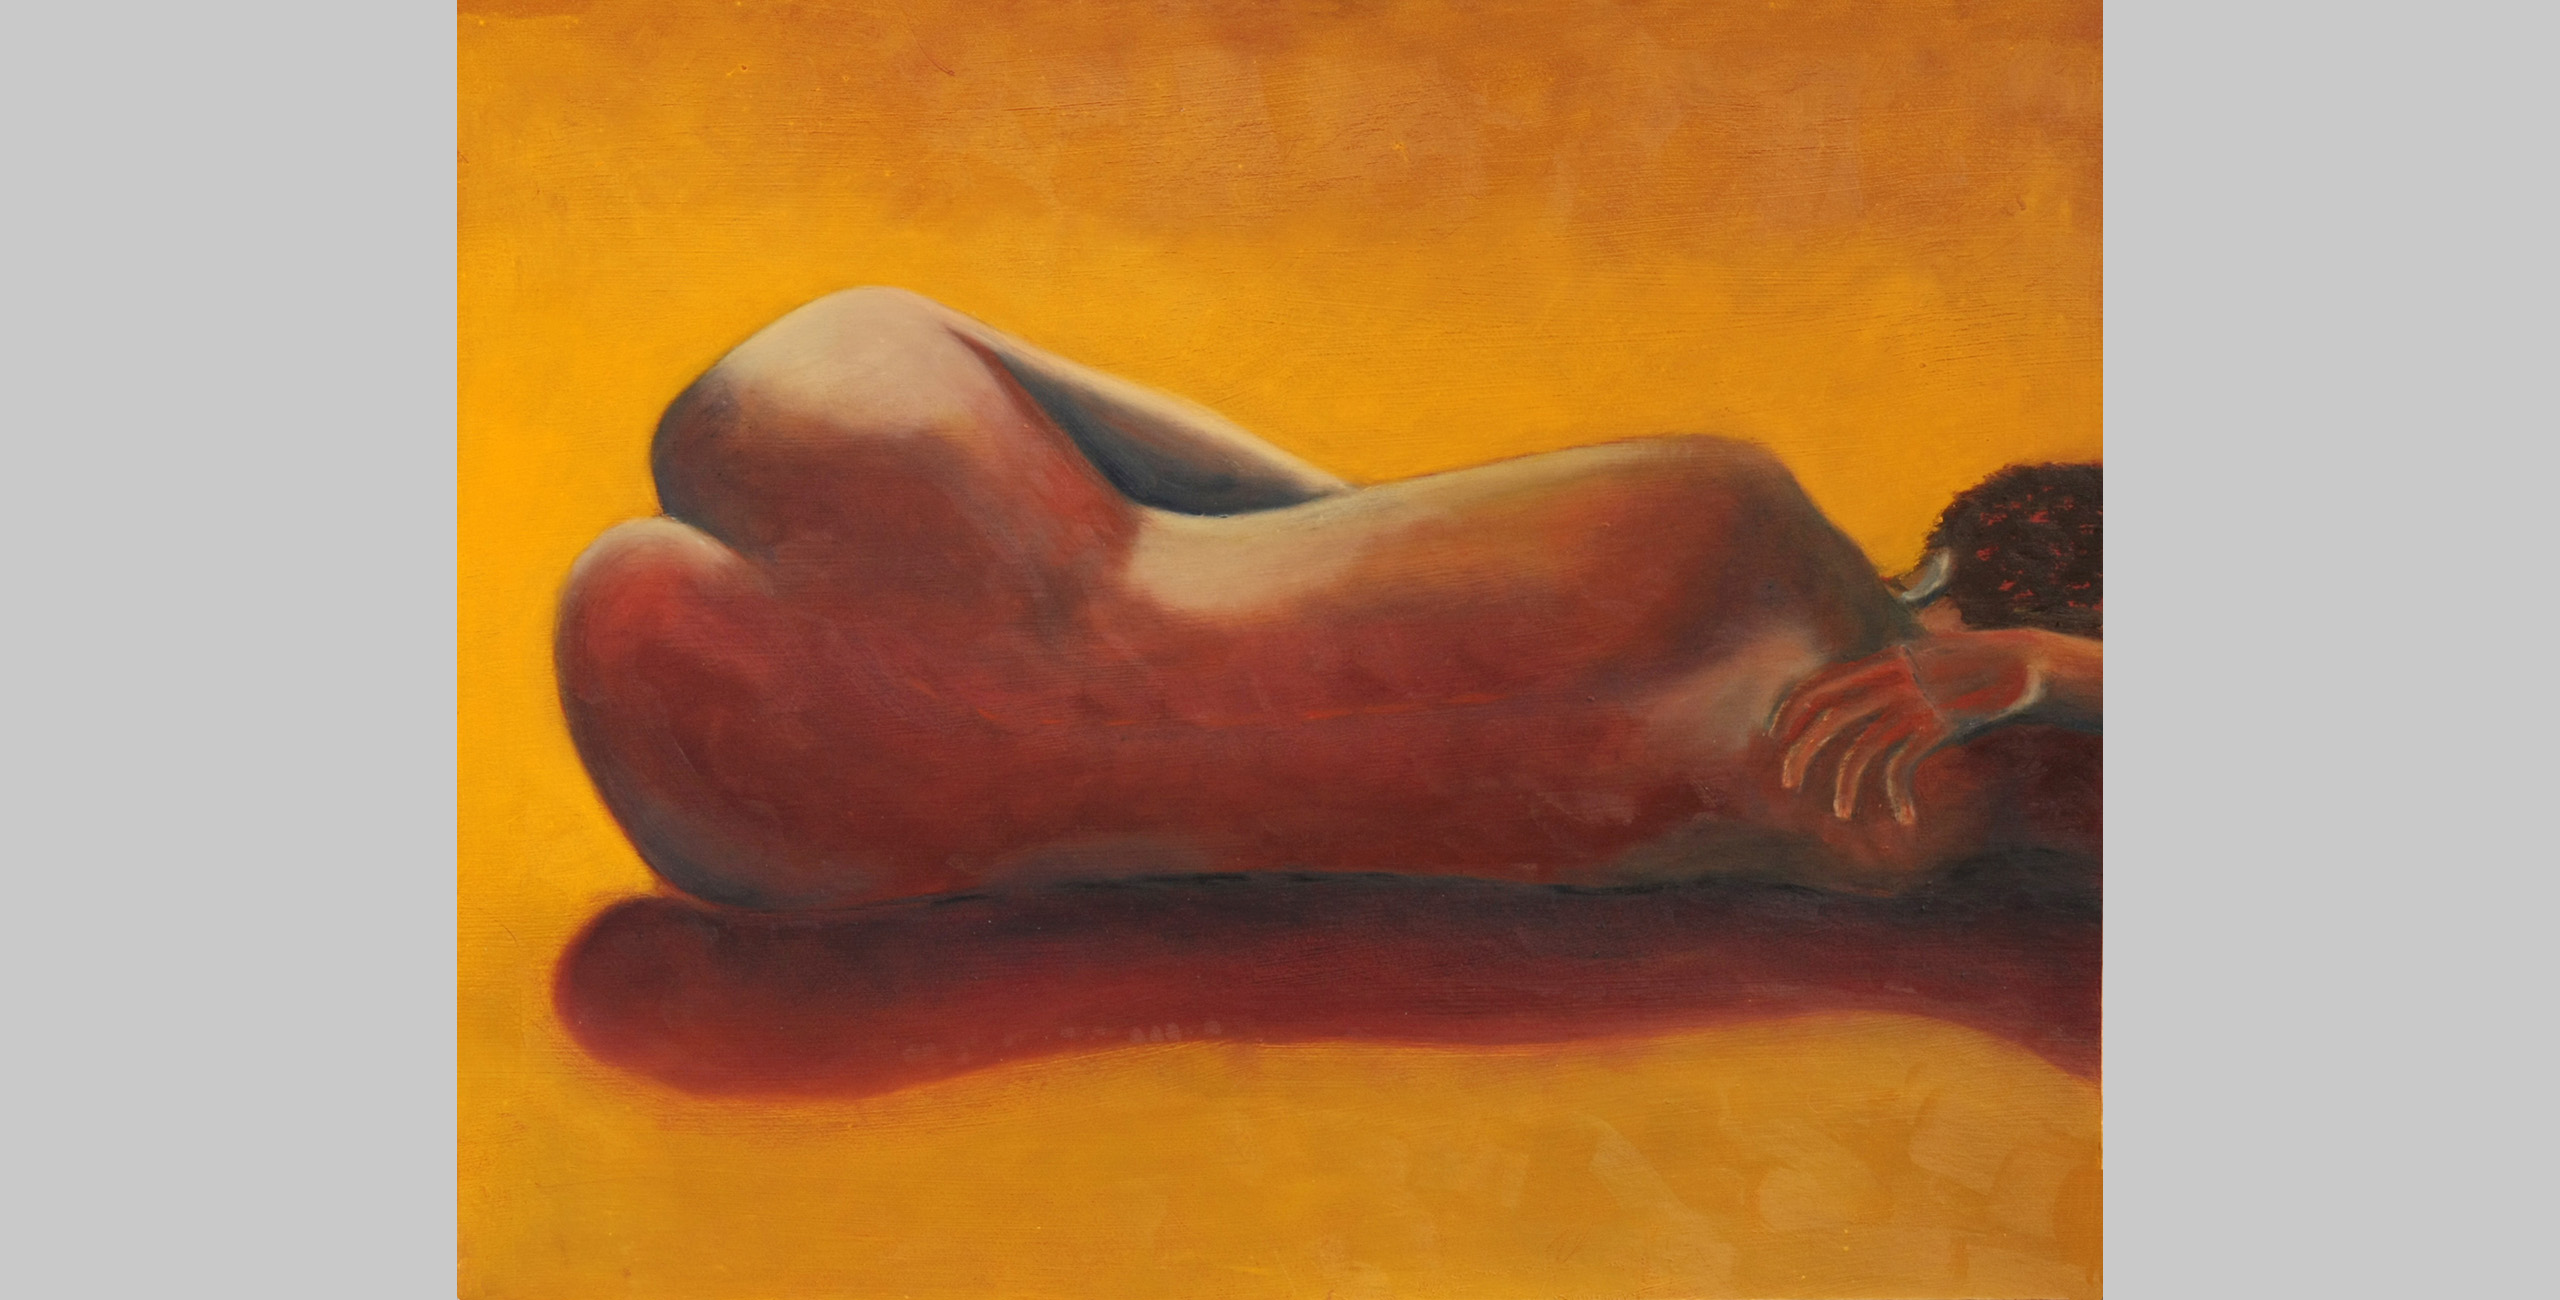 Golden Nude, 2009, oil bar on mat board, 16 x 20 in.